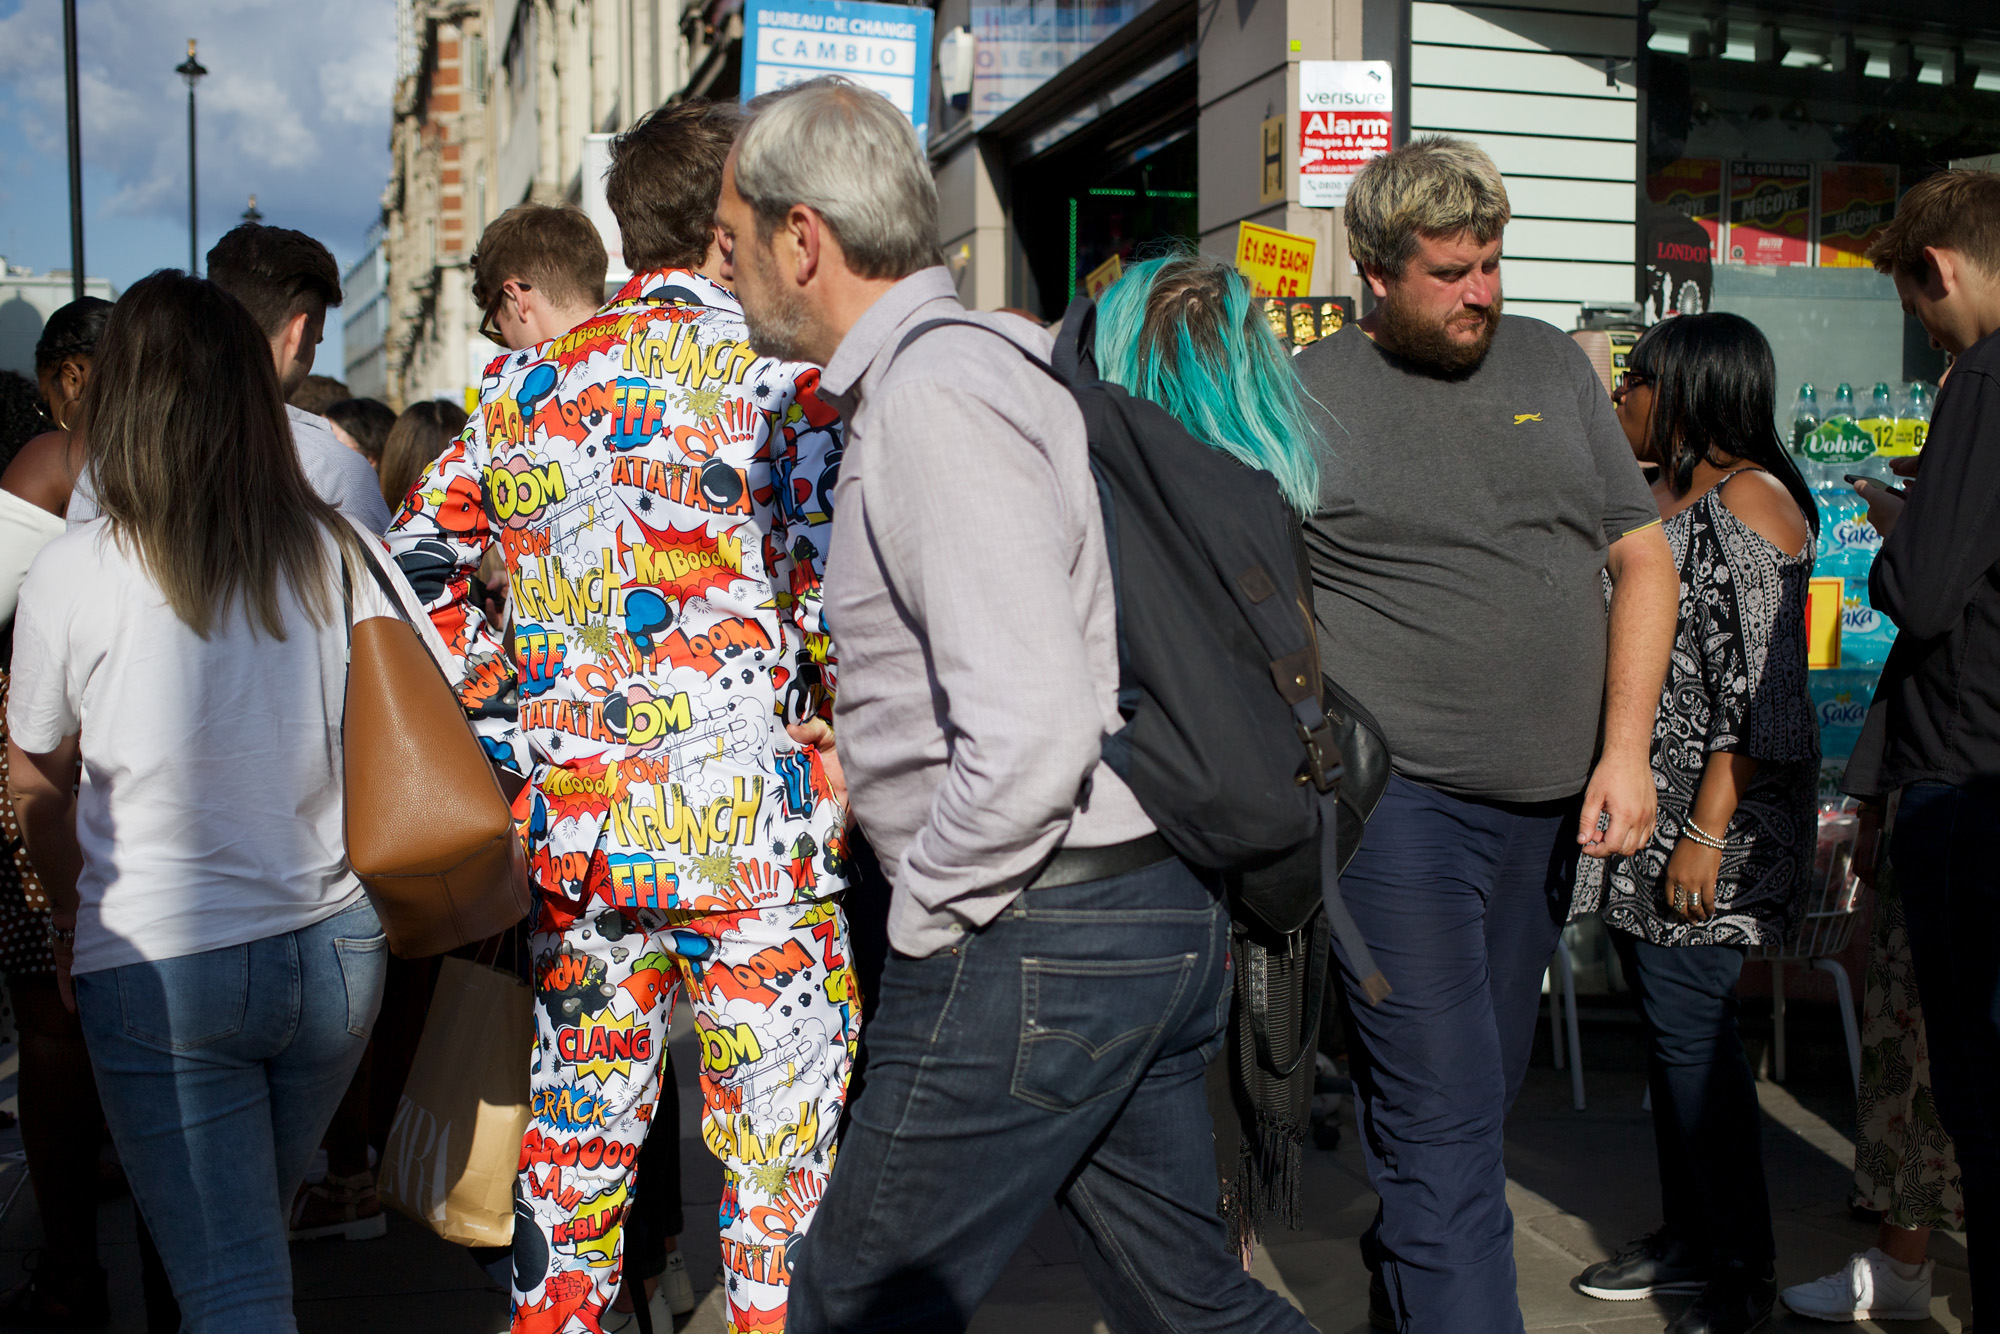 man in bizarre suit with cartoon exclamations all over it